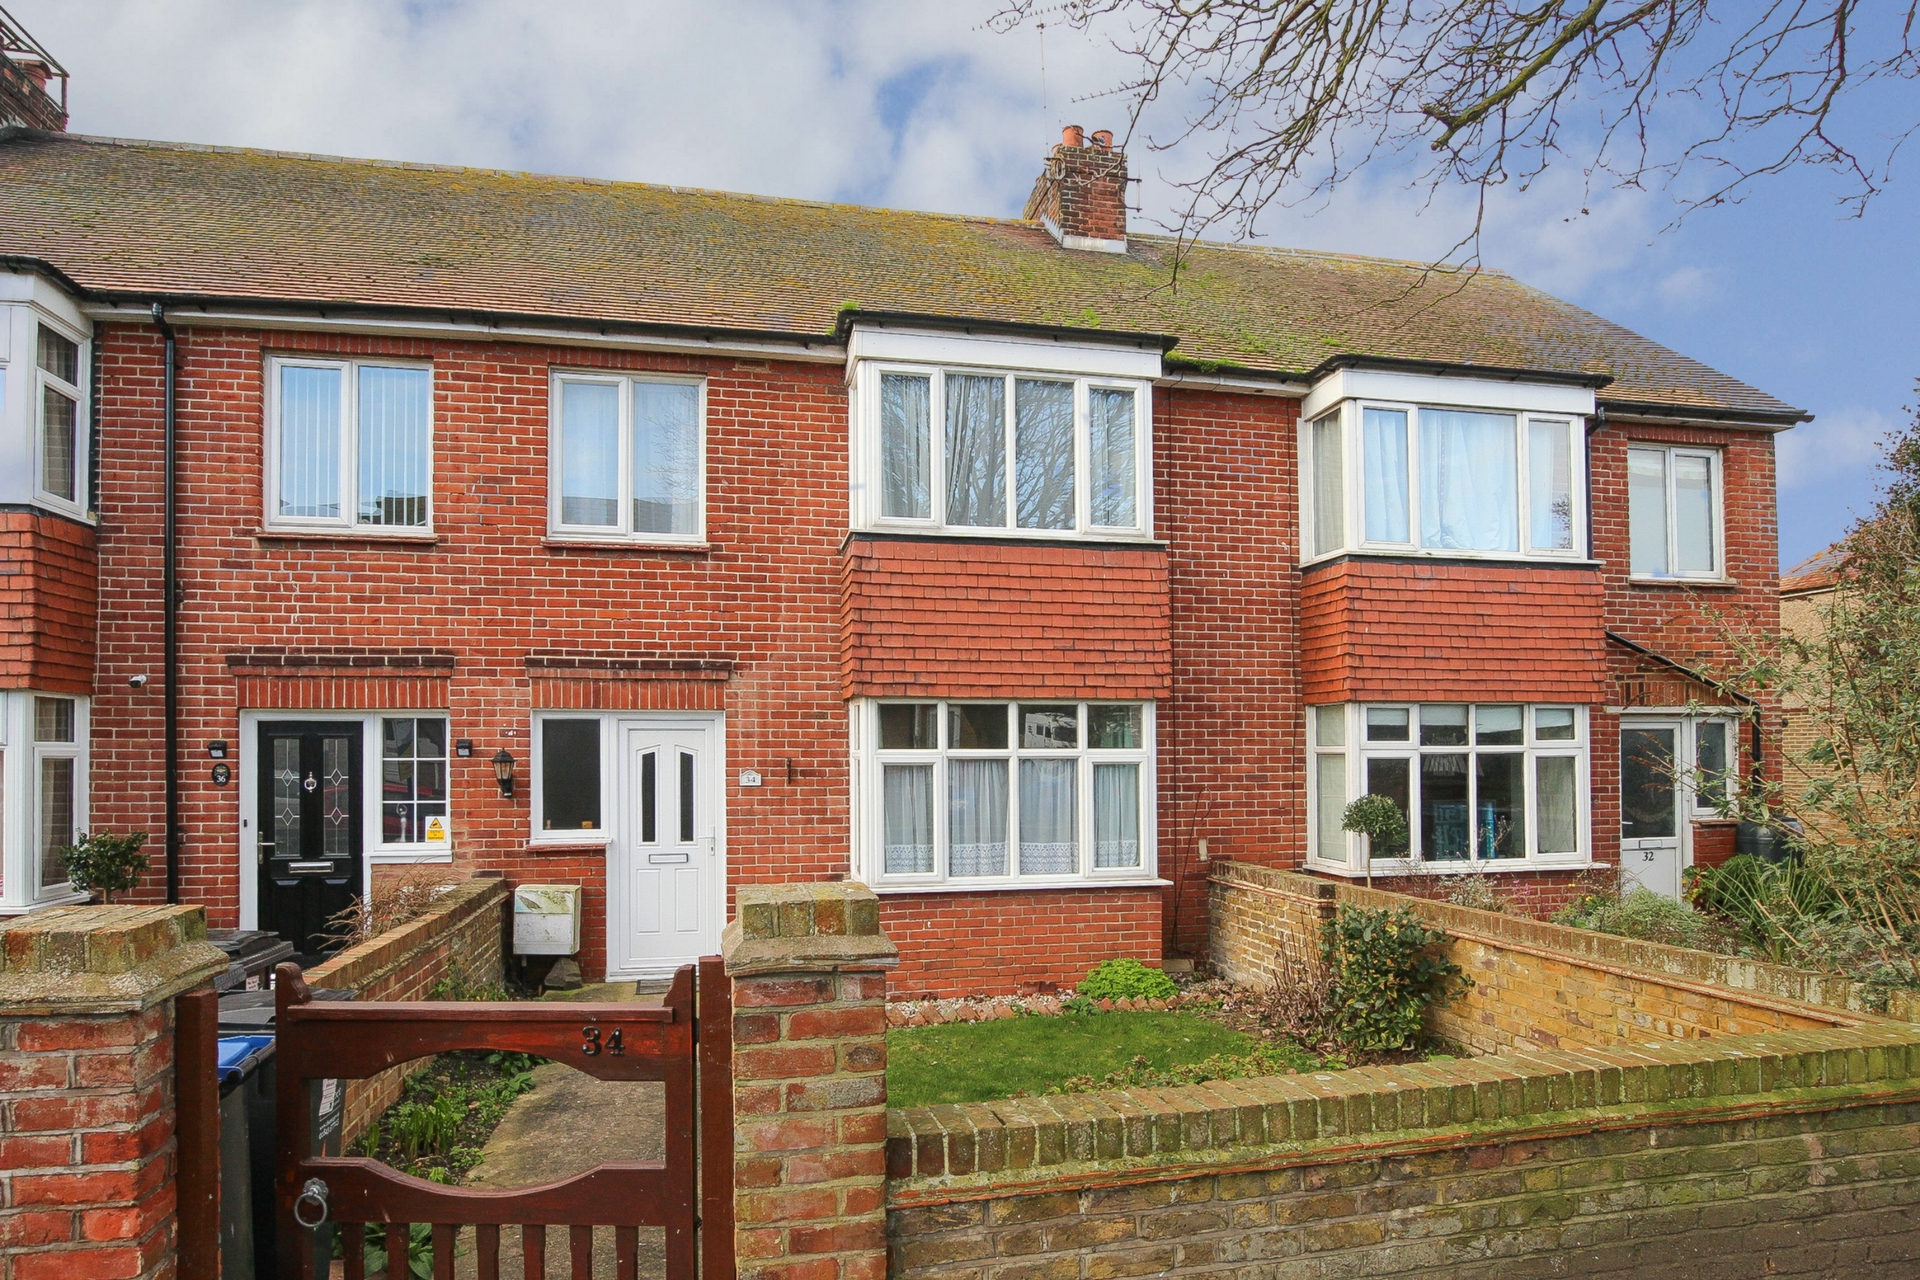 3 bed terraced house for sale in Ethelbert Road, Birchington  - Property Image 1